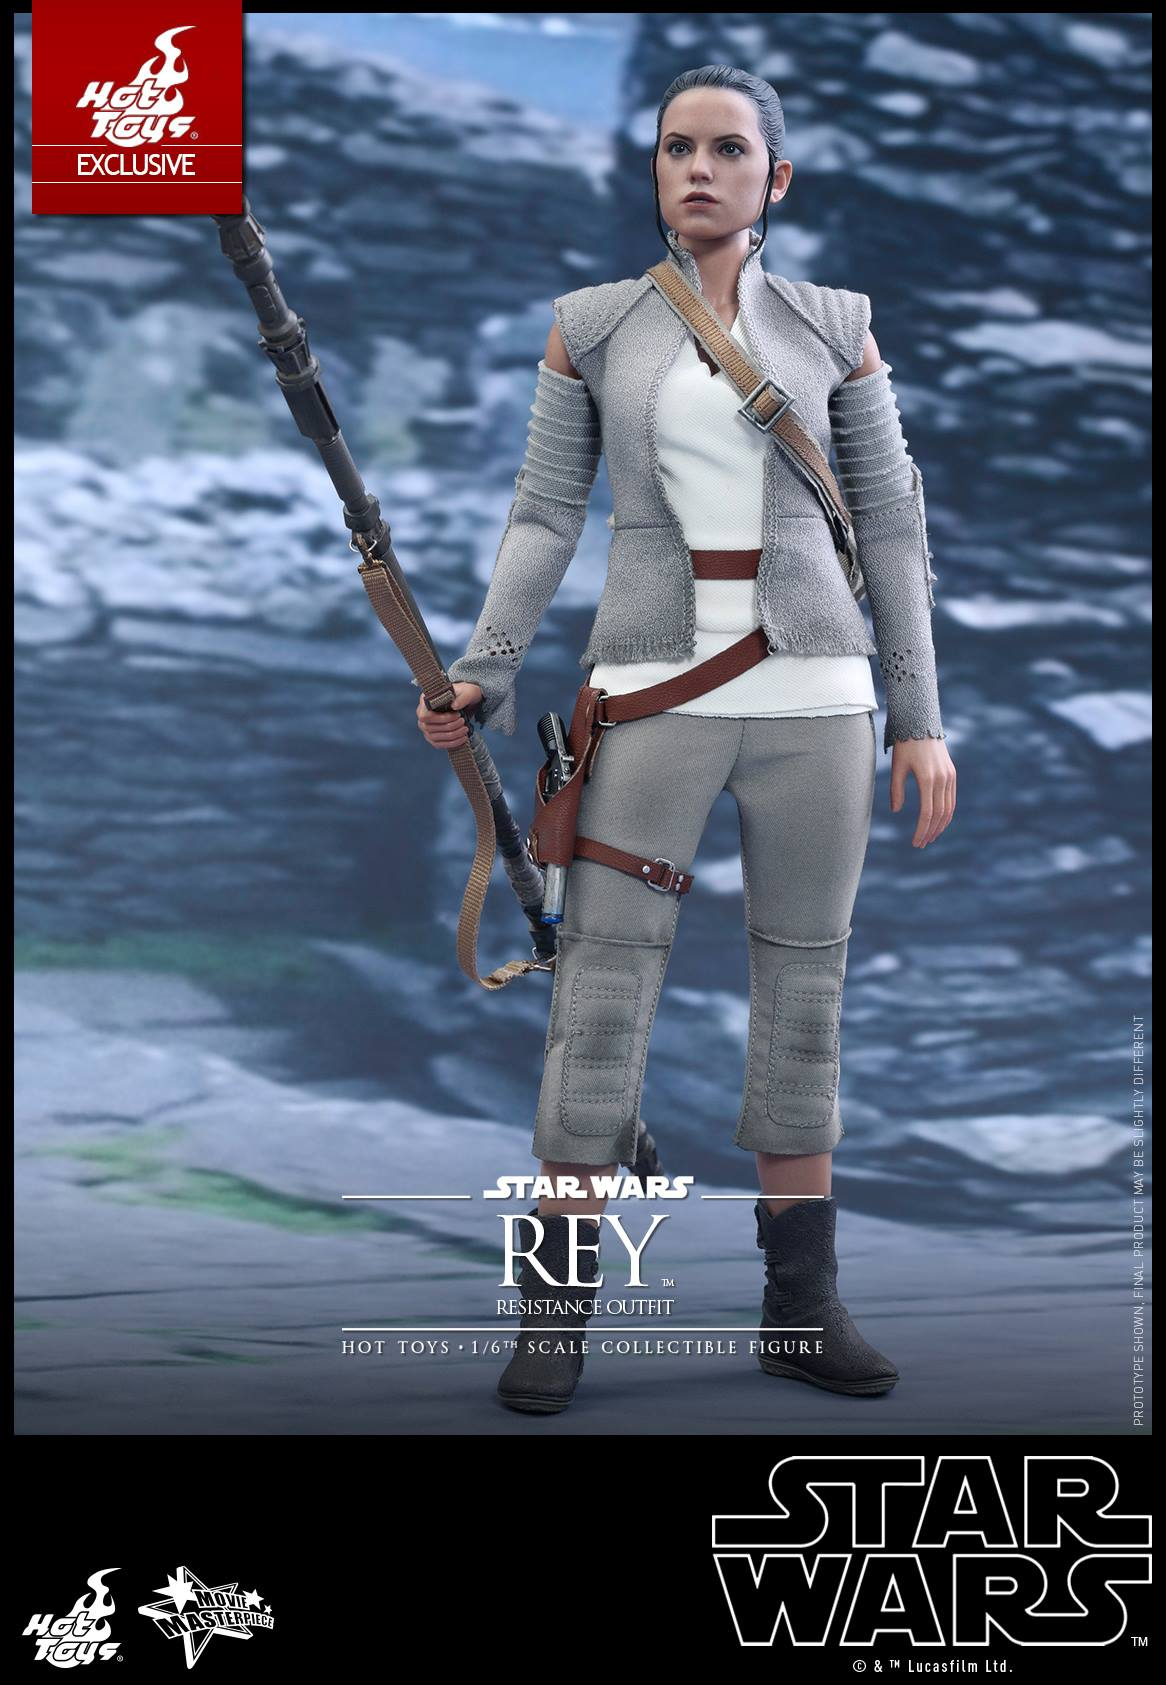 Hot Toys Star Wars The Force Awakens Resistance Outfit